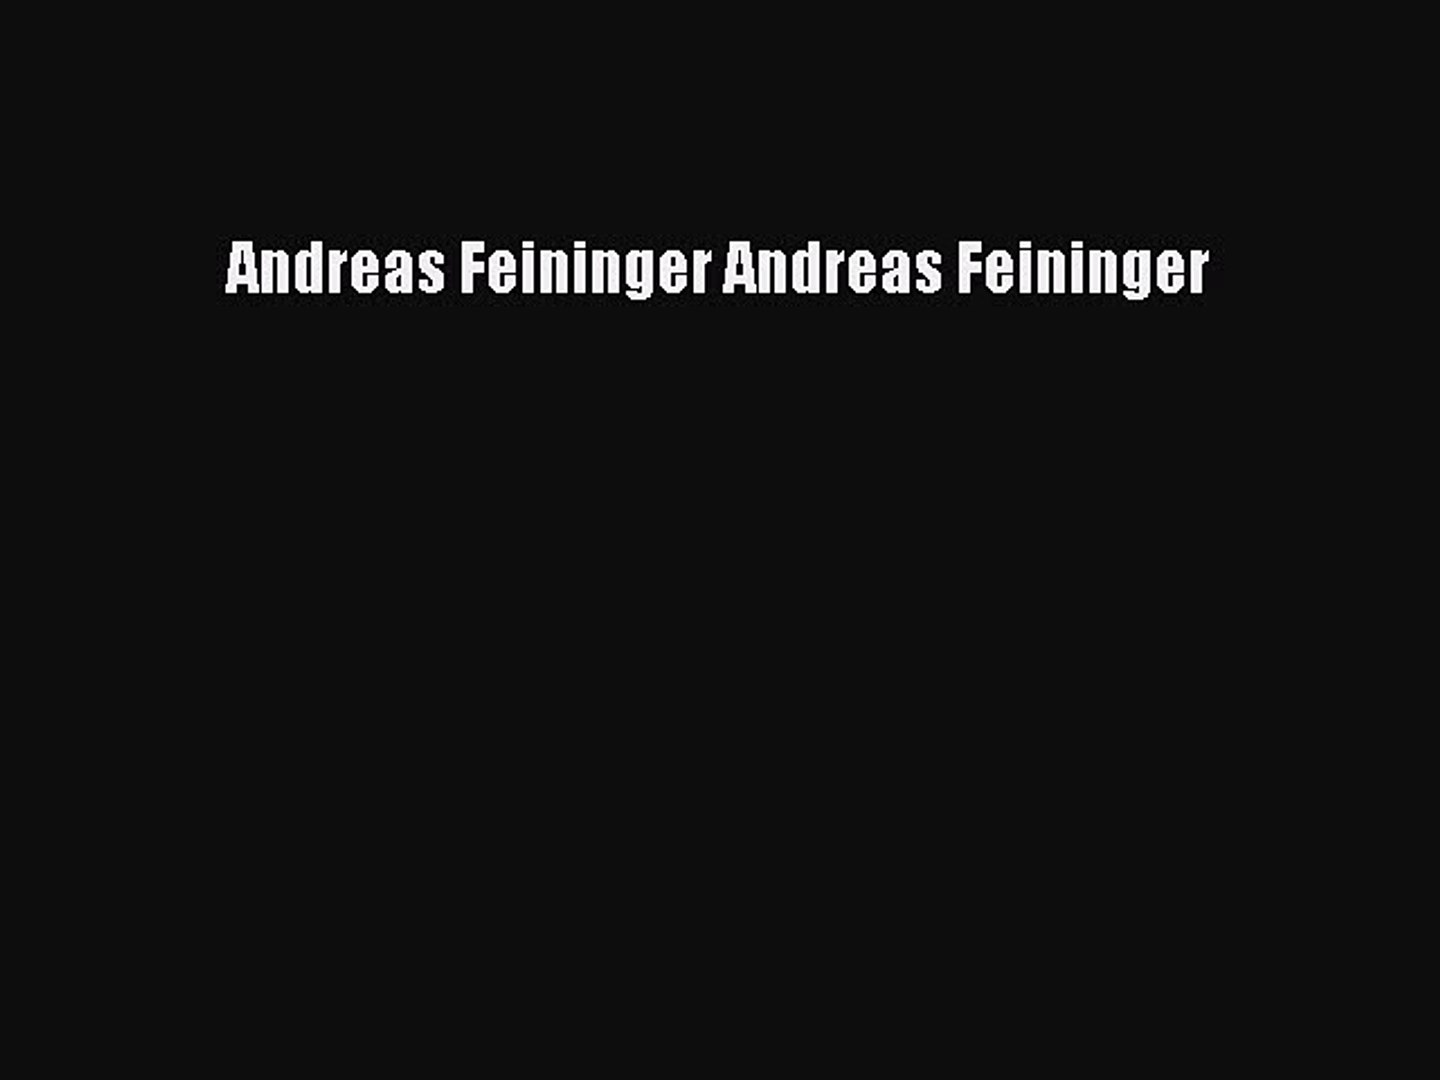 Download Andreas Feininger Andreas Feininger Ebook Free